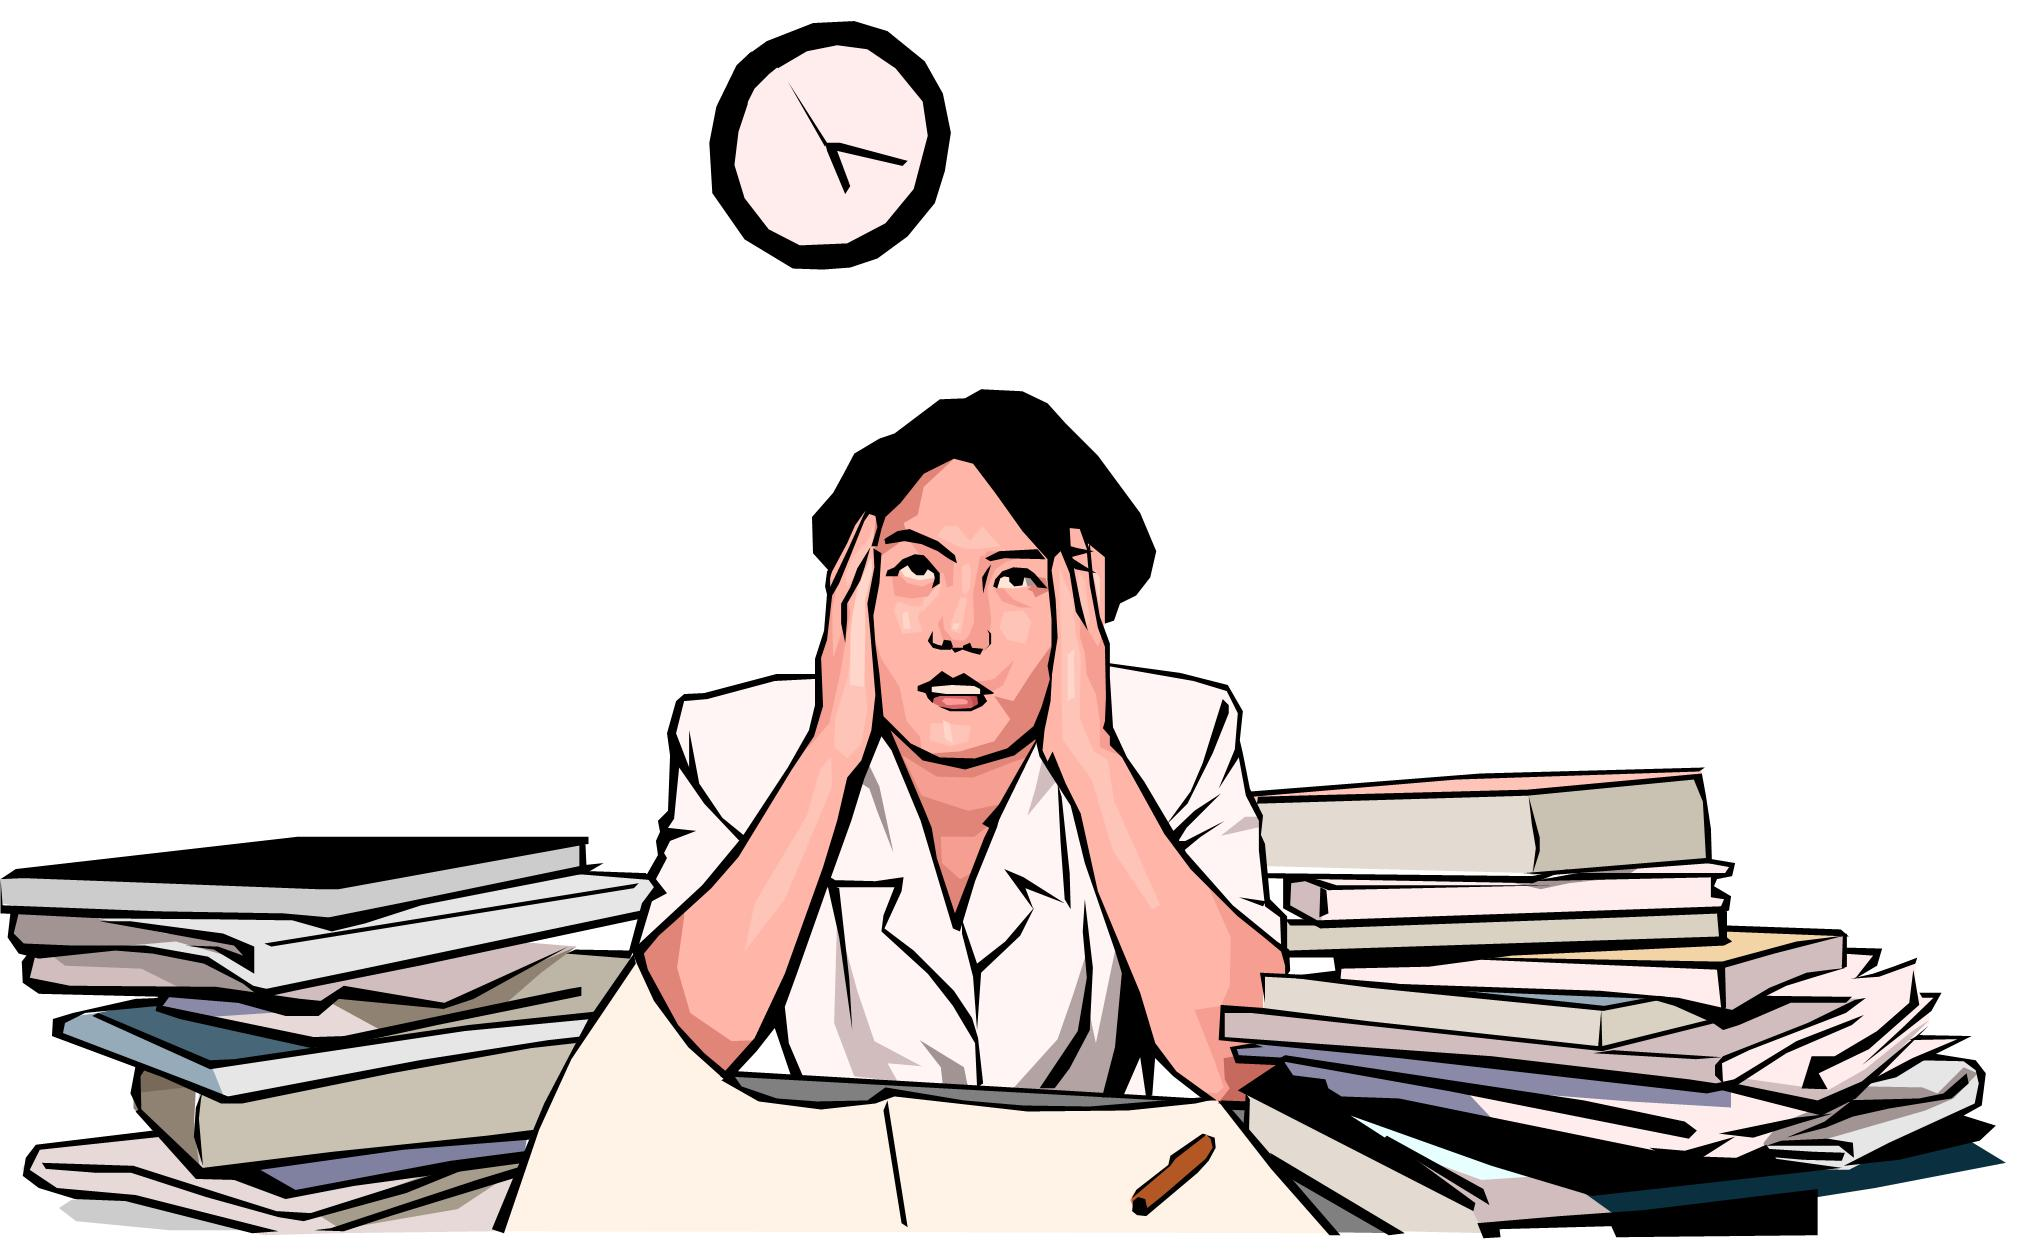 stressed-person-clipart-best-V15SuM